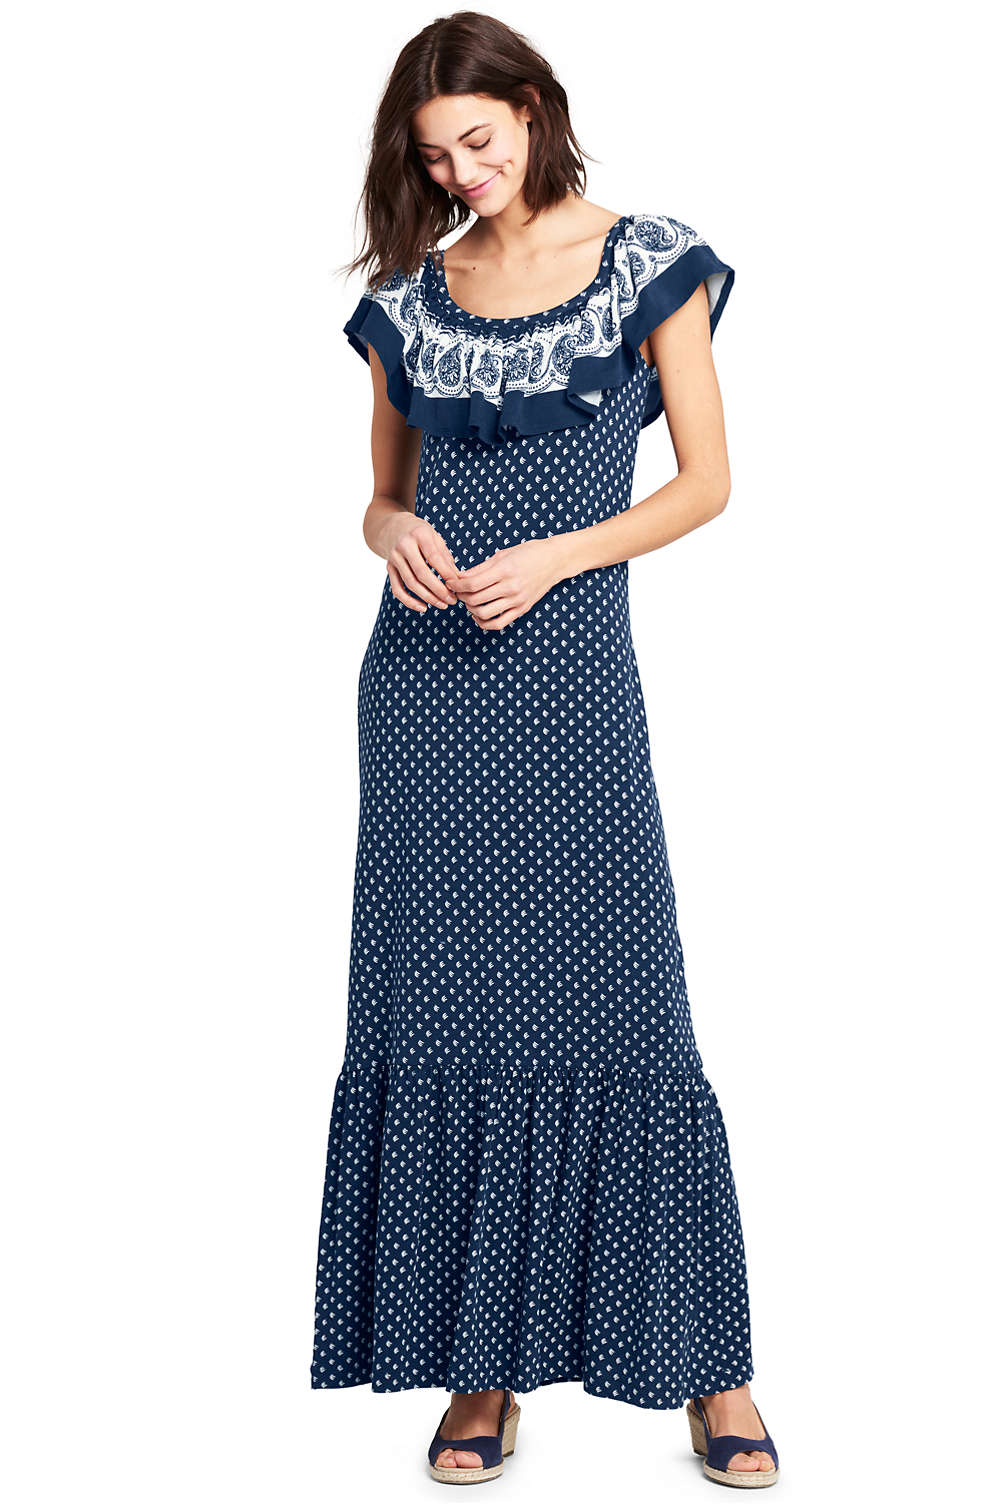 2424ee7959a Women s Sleeveless Print Knit Flounced Shoulder Maxi Dress from Lands  End